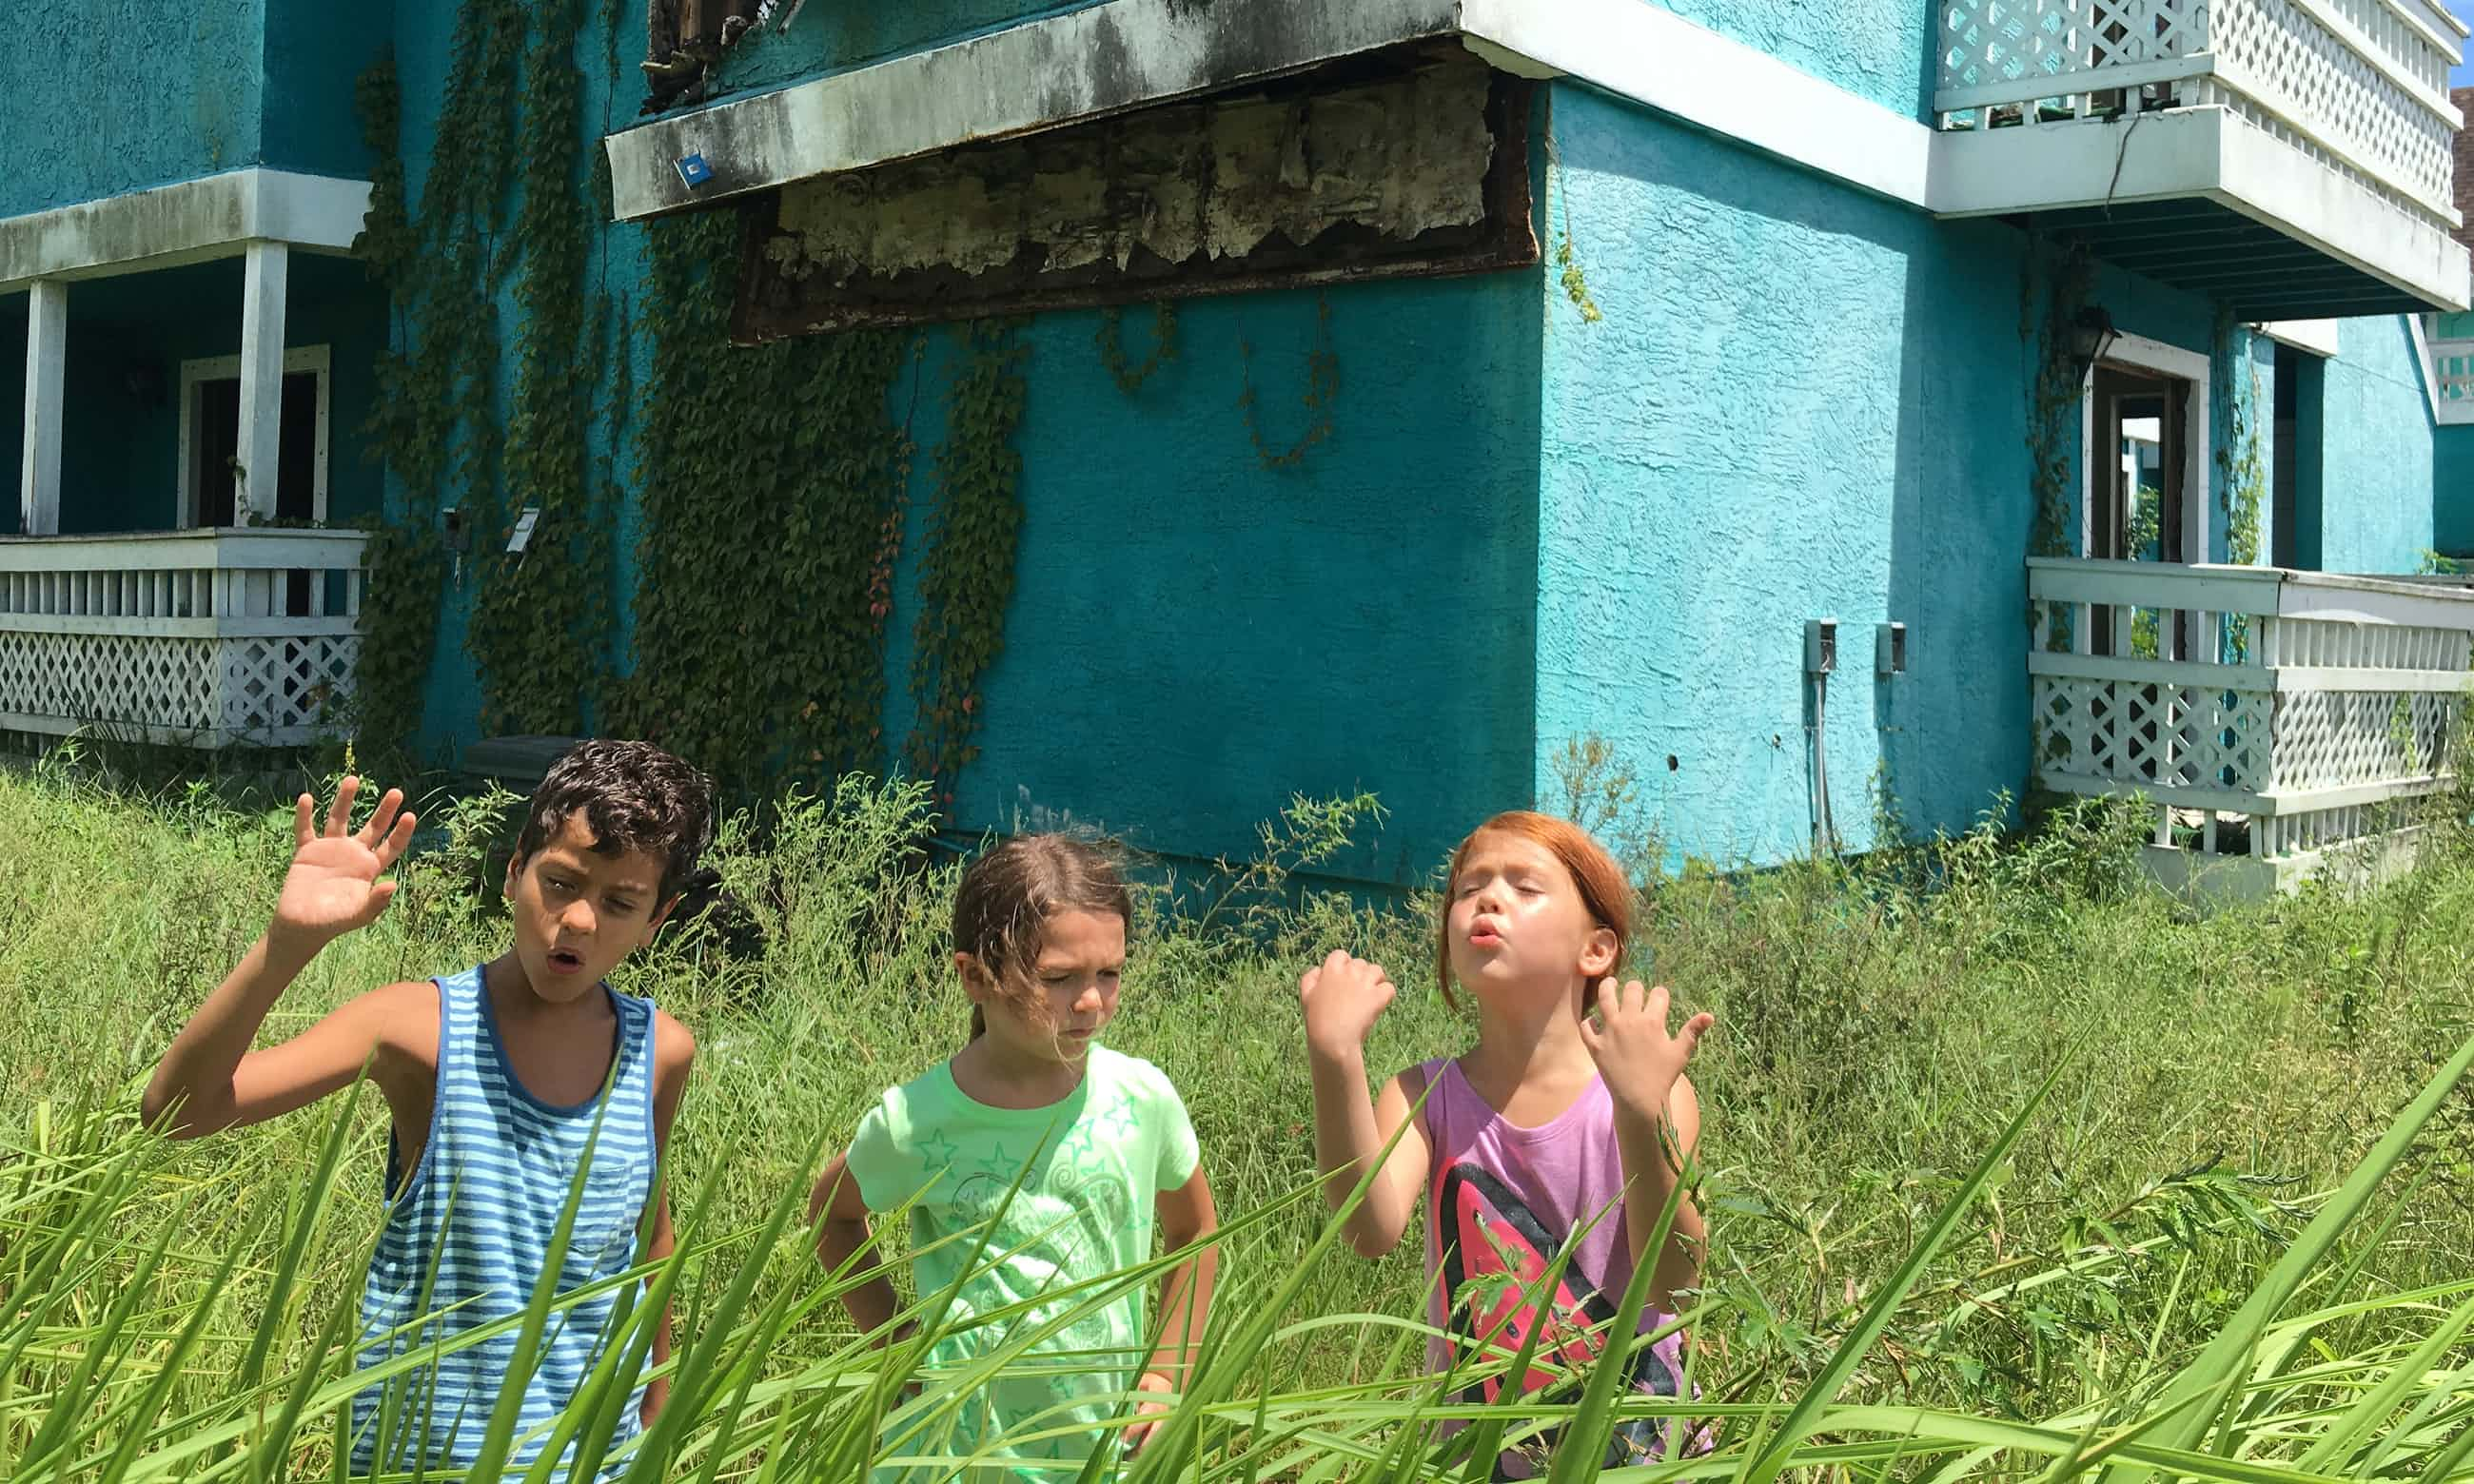 The Florida Project, 30 June 2018